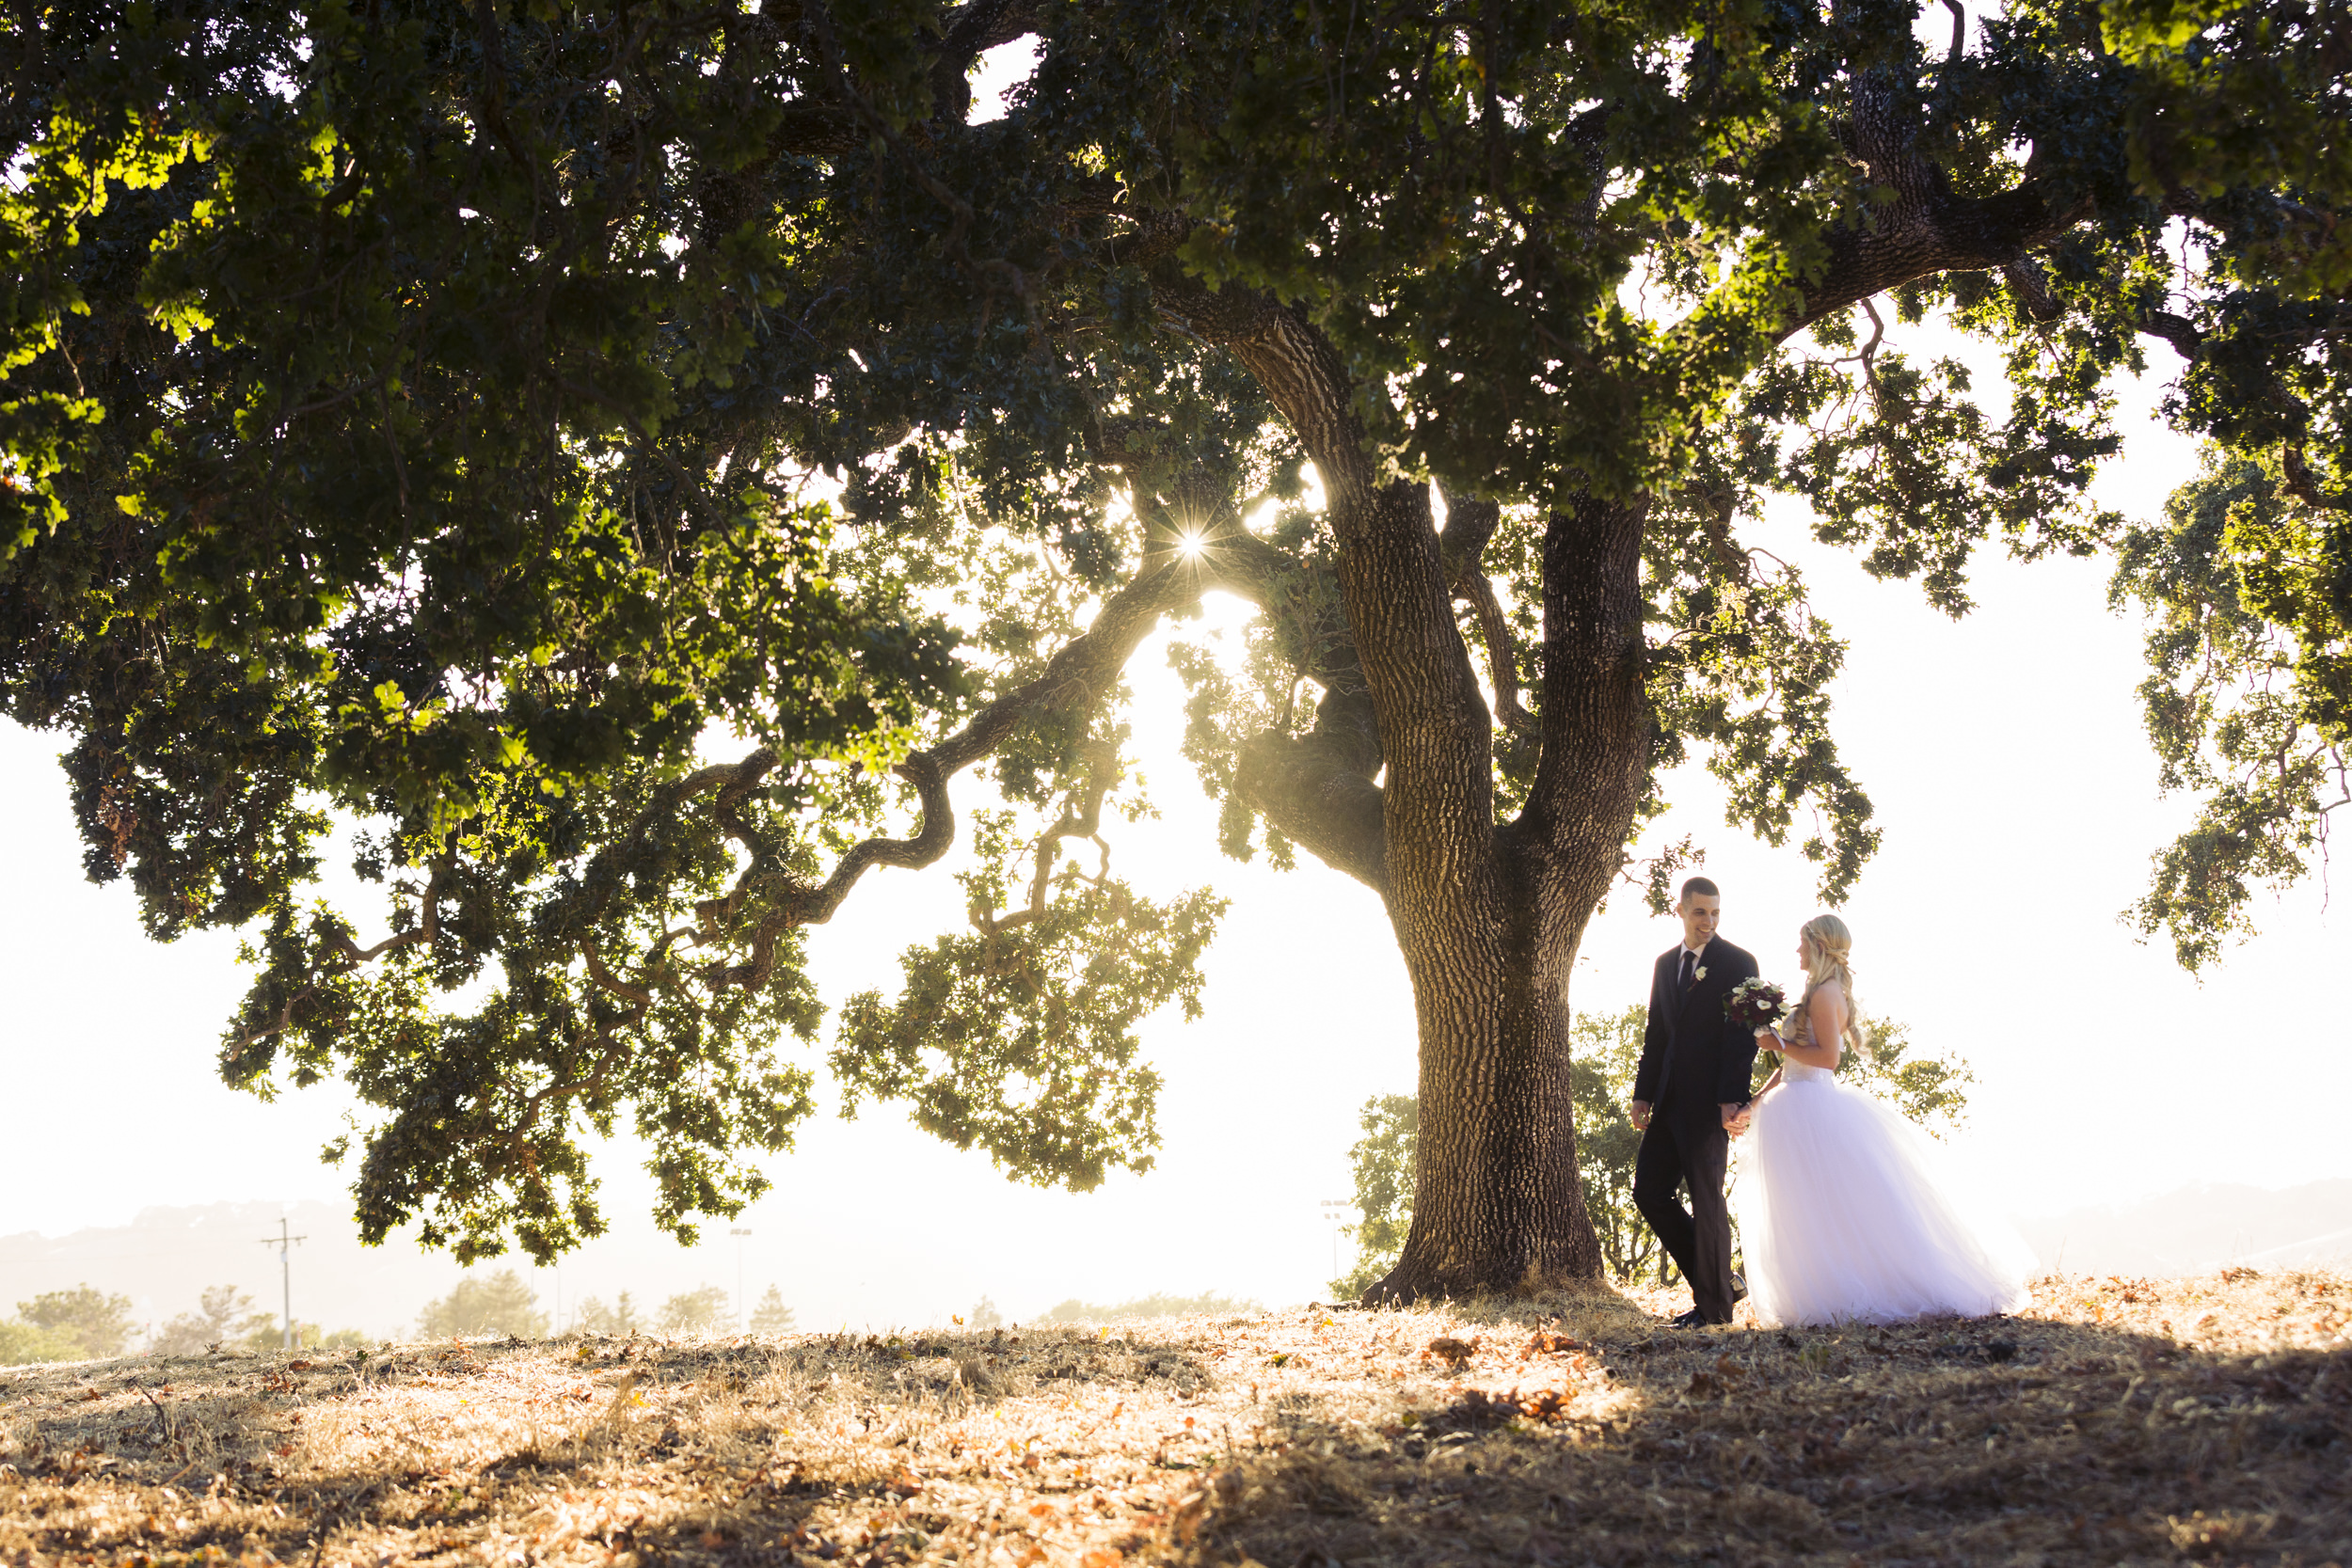 wedding-day-couple-session-bride-groom-large-tree-1.jpg